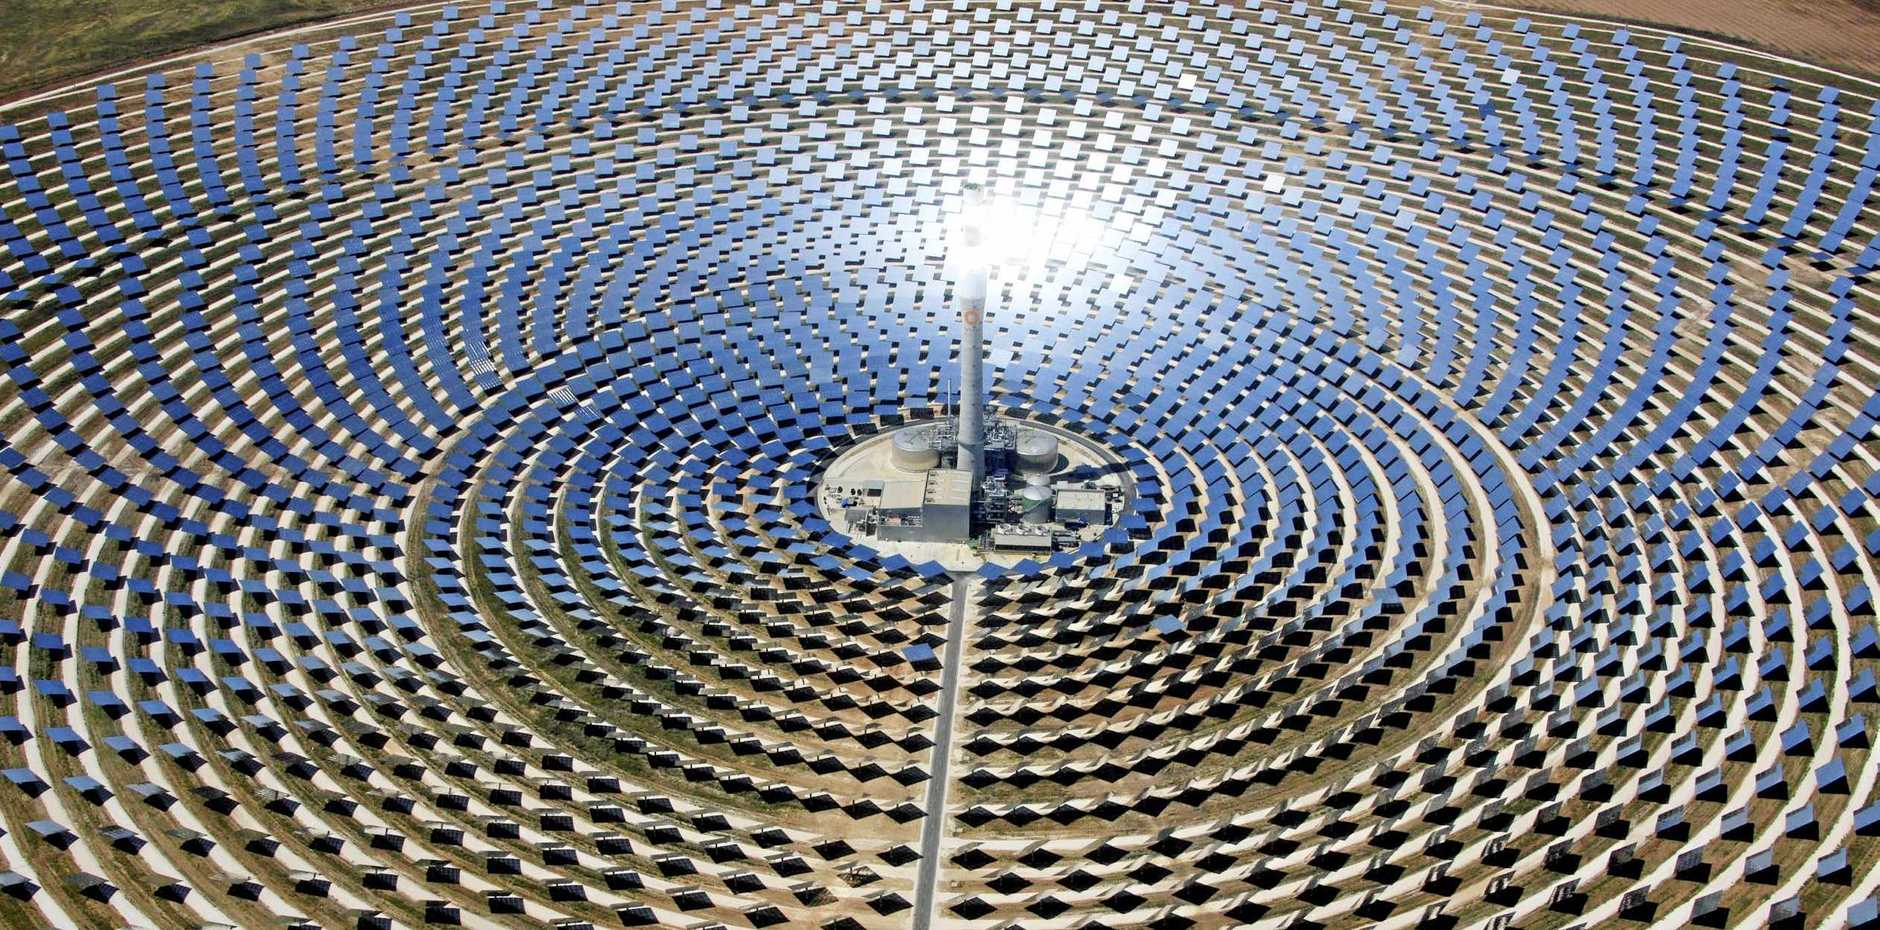 THERMAL SOLAR: Australian company Vast Solar is looking to Charleville as a potential location to produce solar thermal power, and has set up a research station east of town.